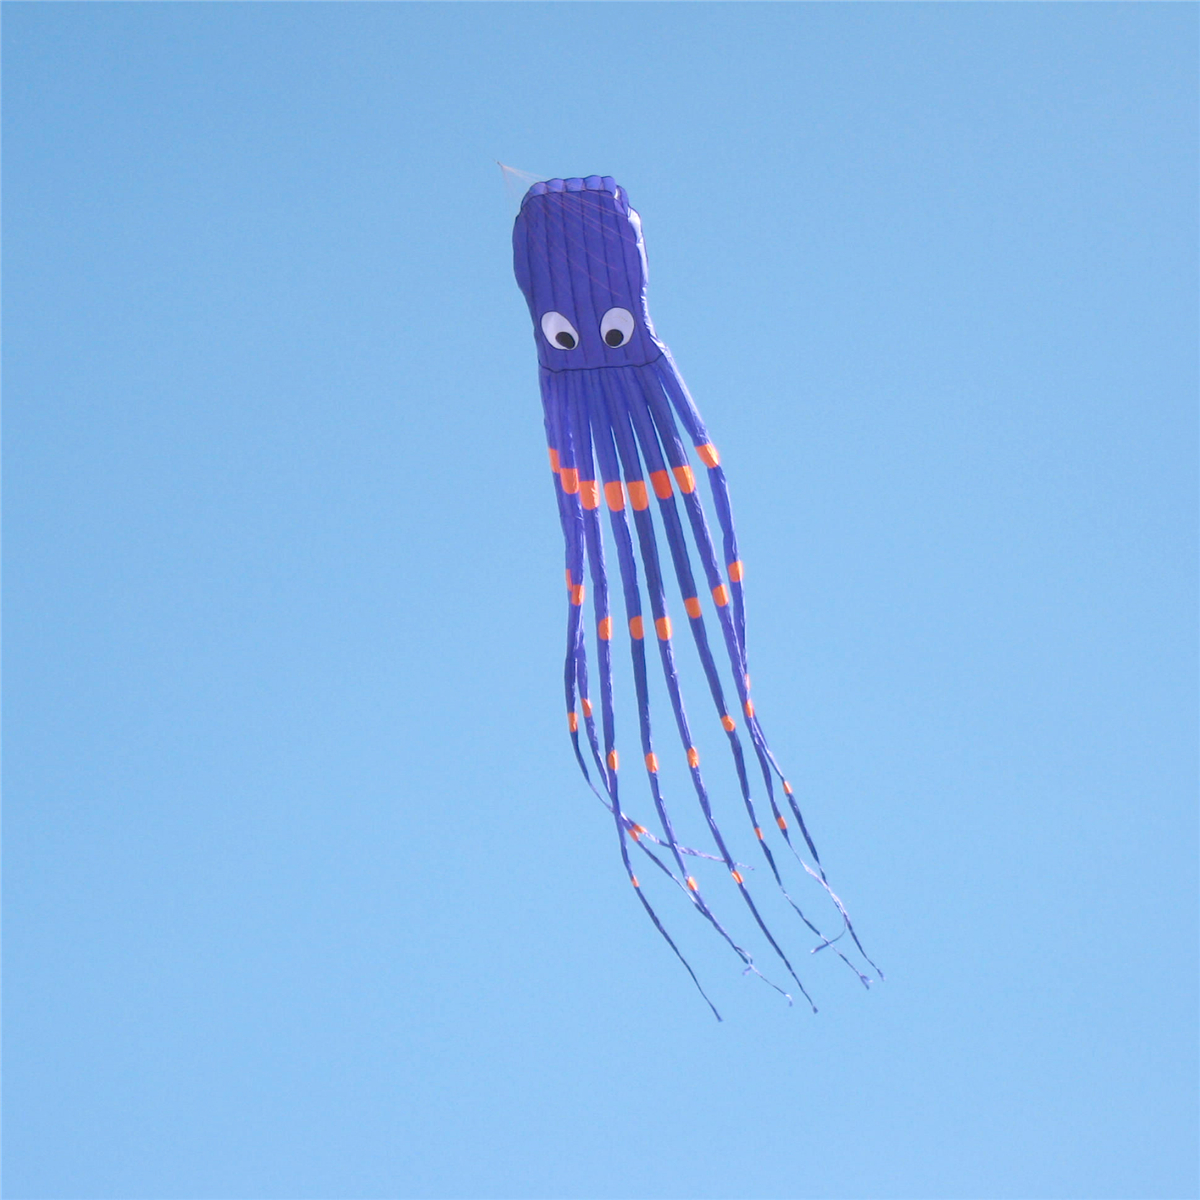 35Inches Octopus Kite Outdoor Sports Toys For Kids Single Line Parachute Toys